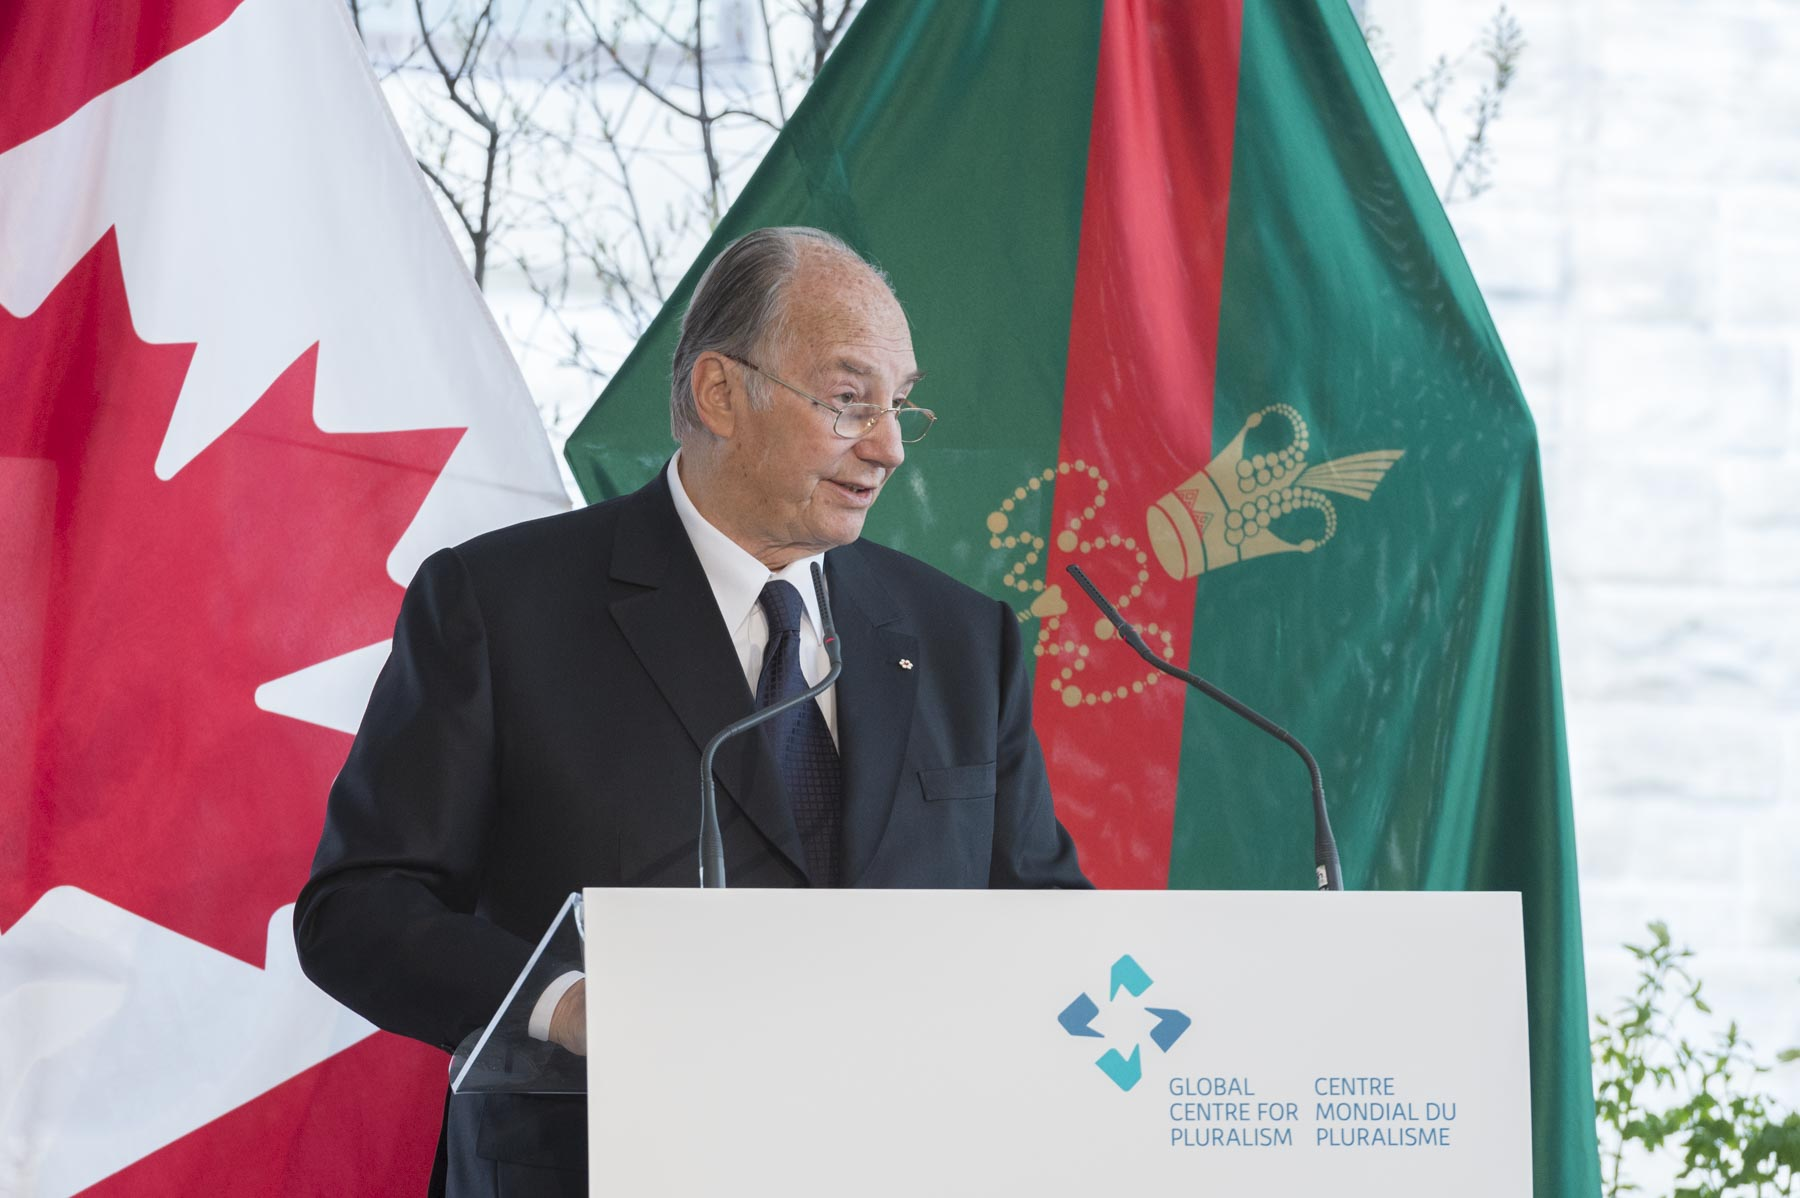 His Highness the Aga Khan greeted guests.